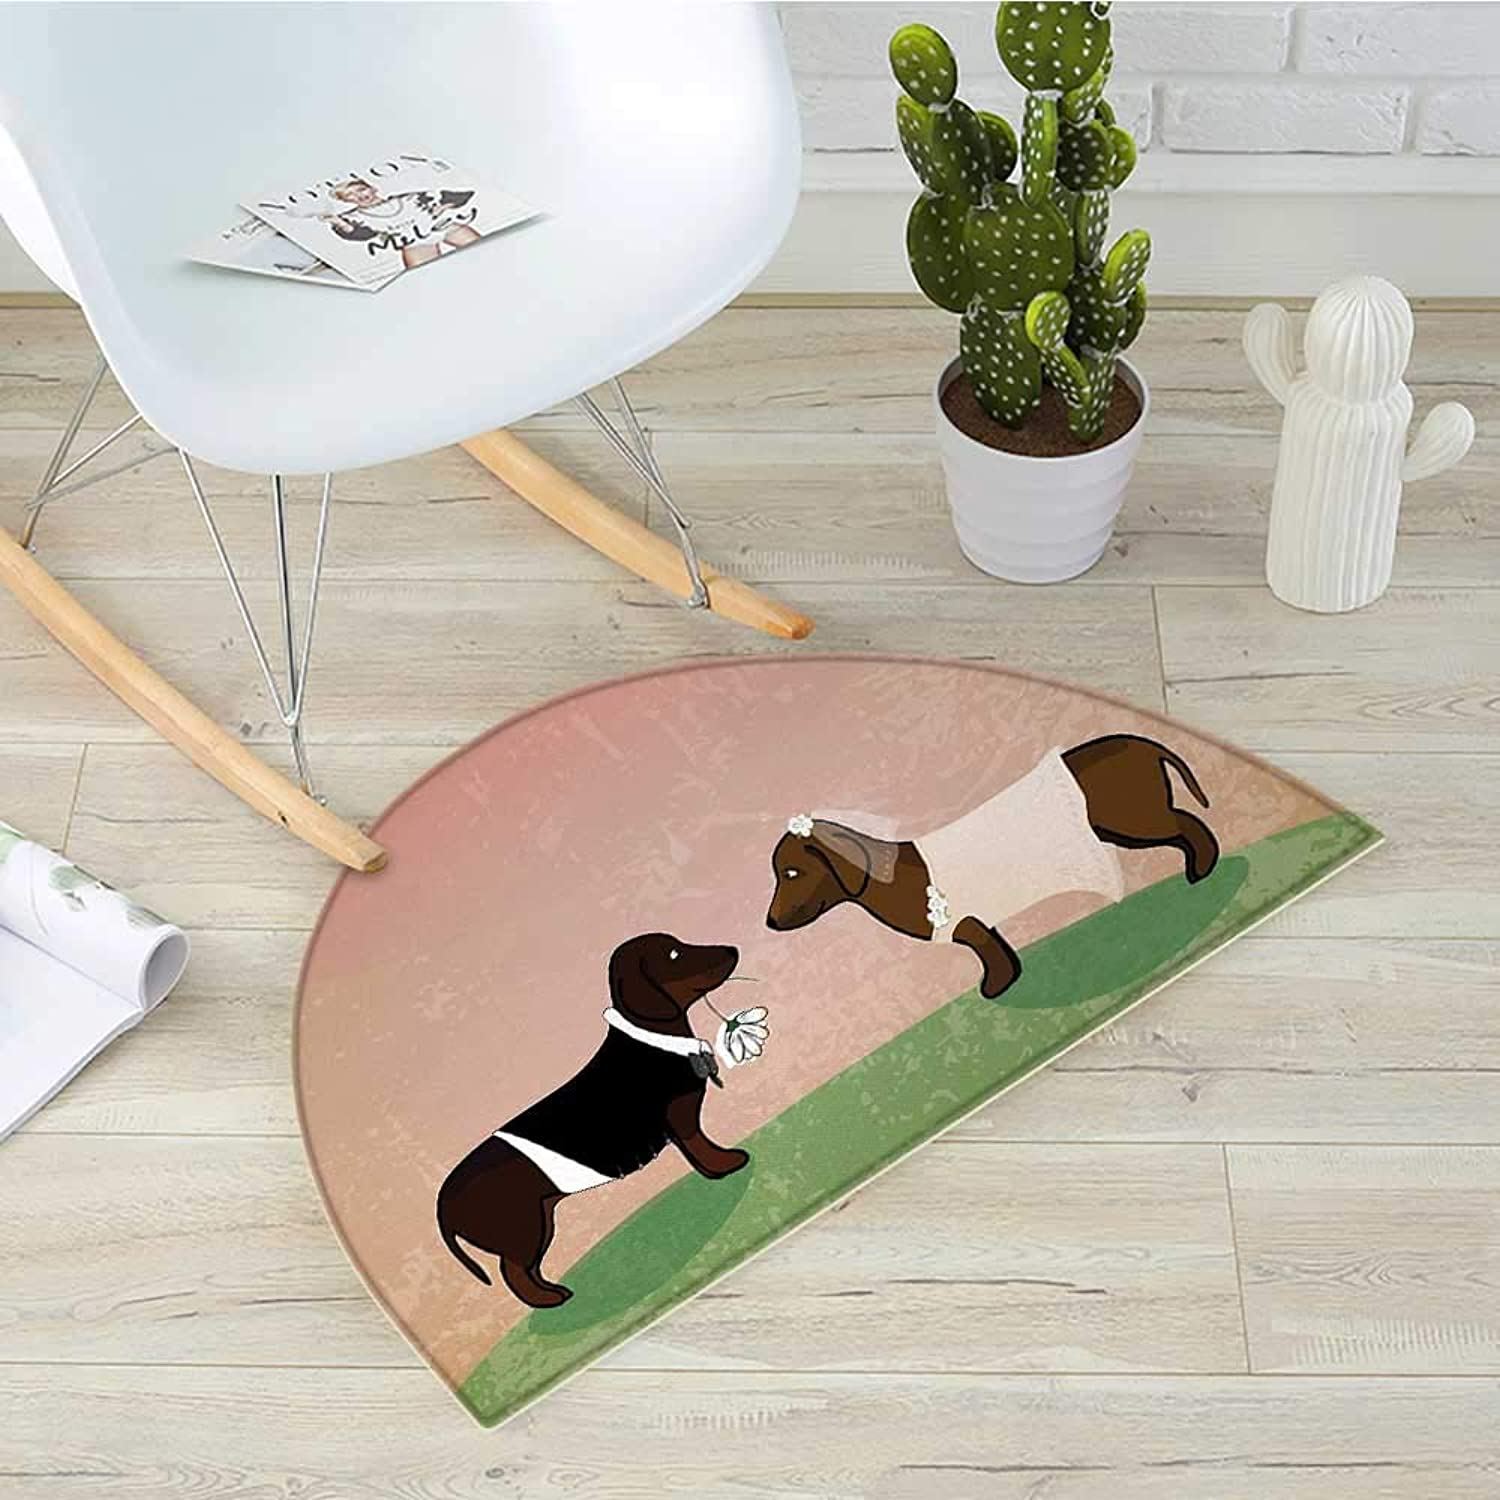 Dachshund Half Round Door mats Cute Groom and Bride Dogs Marriage Themed Ceremonial Illustration Cartoon Style Bathroom Mat H 39.3  xD 59  Multicolor